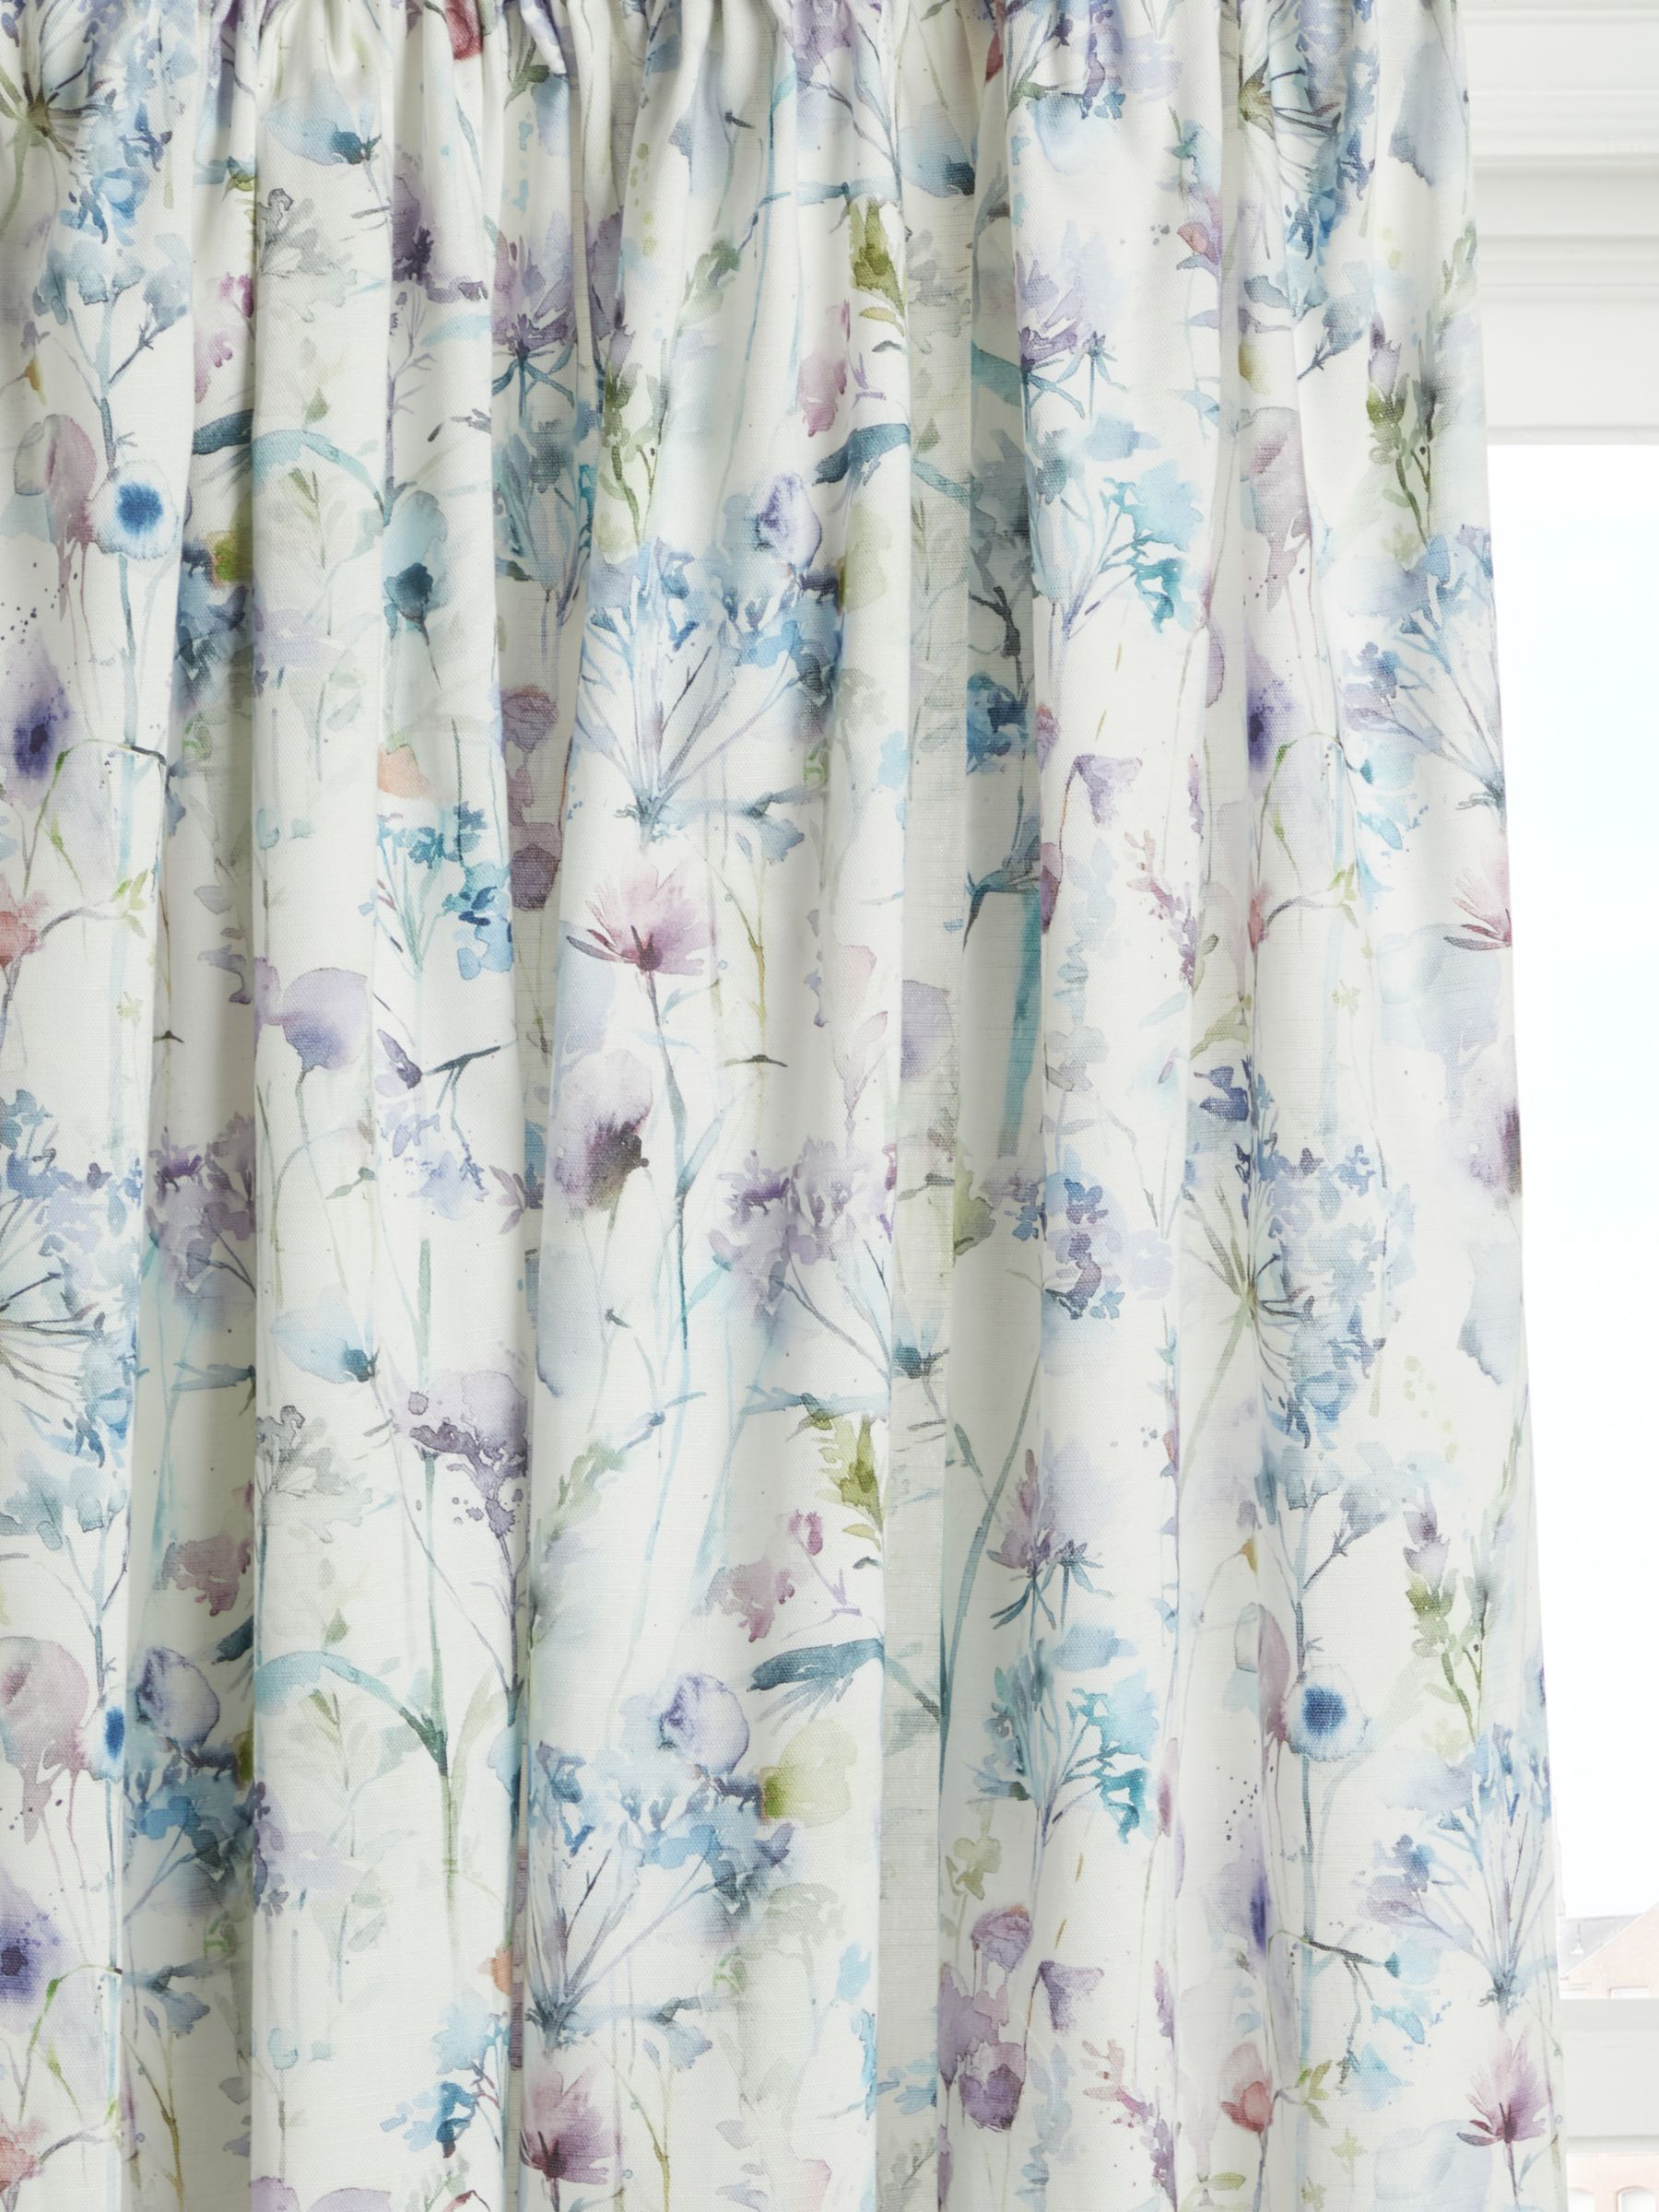 Voyage Voyage Colby Pair Lined Pencil Pleat Curtains